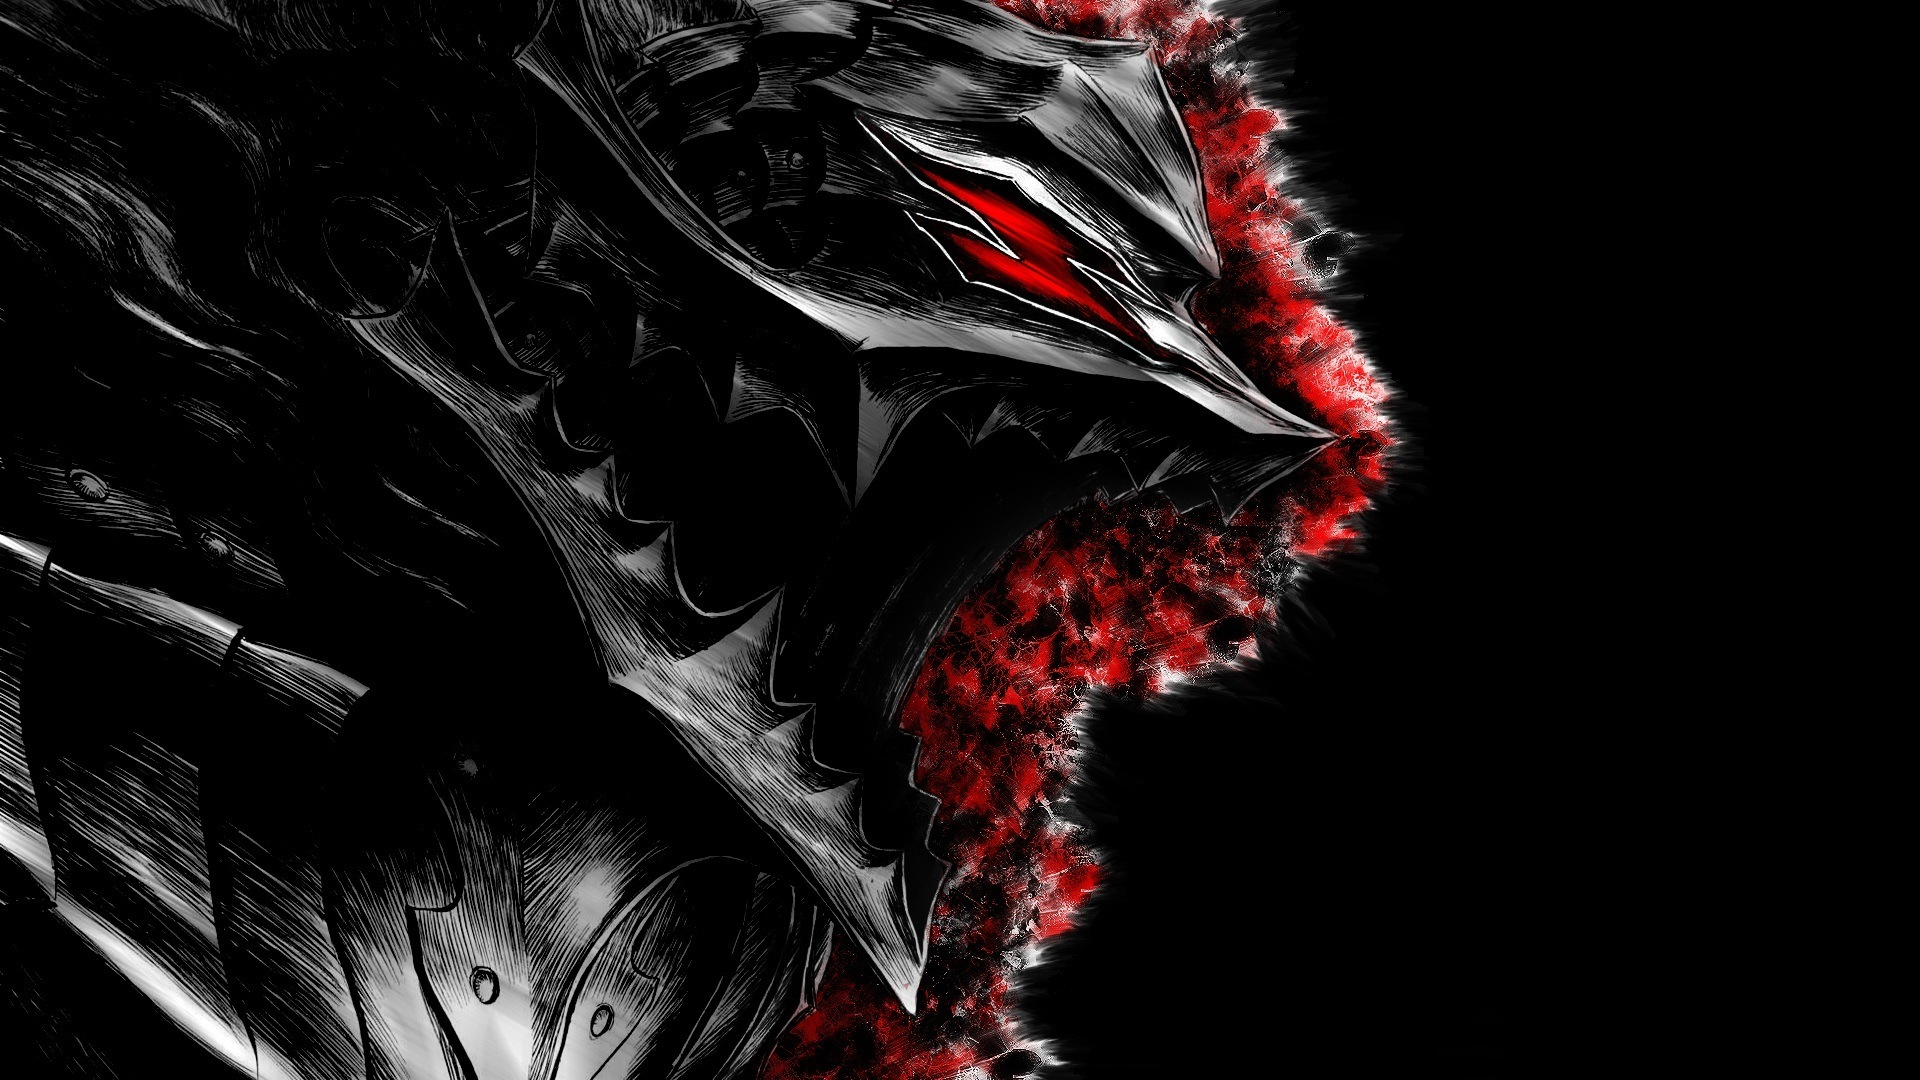 berserk wallpaper 4k -#main